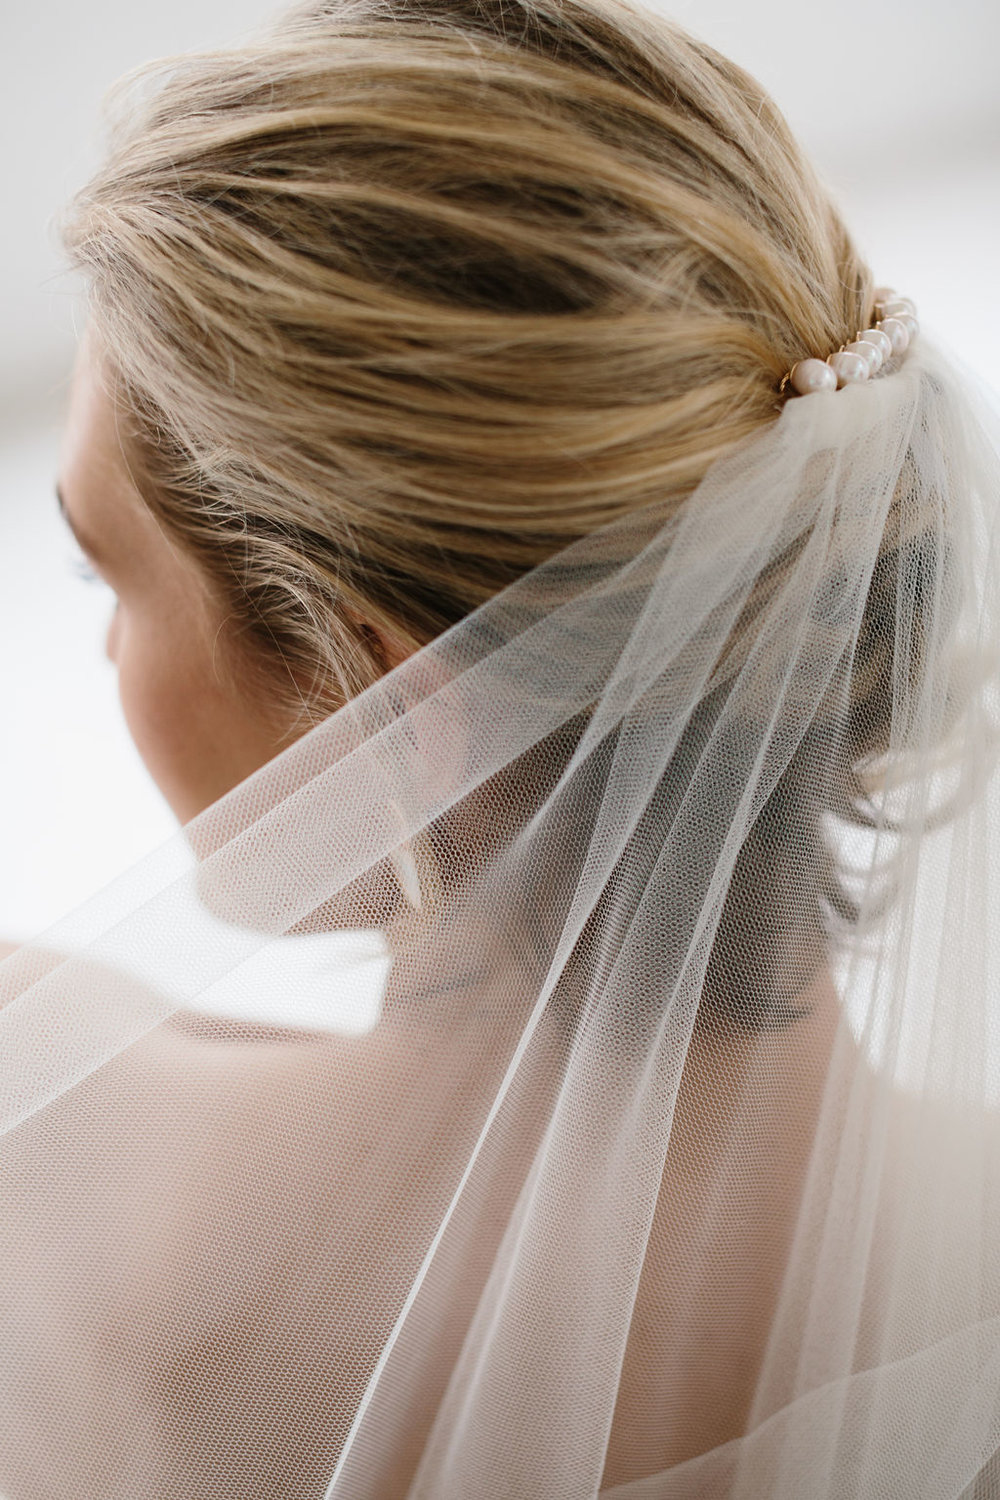 Natural messy bridal updo with pearl hair pins in veil for Amelie George Jewellery Campaign